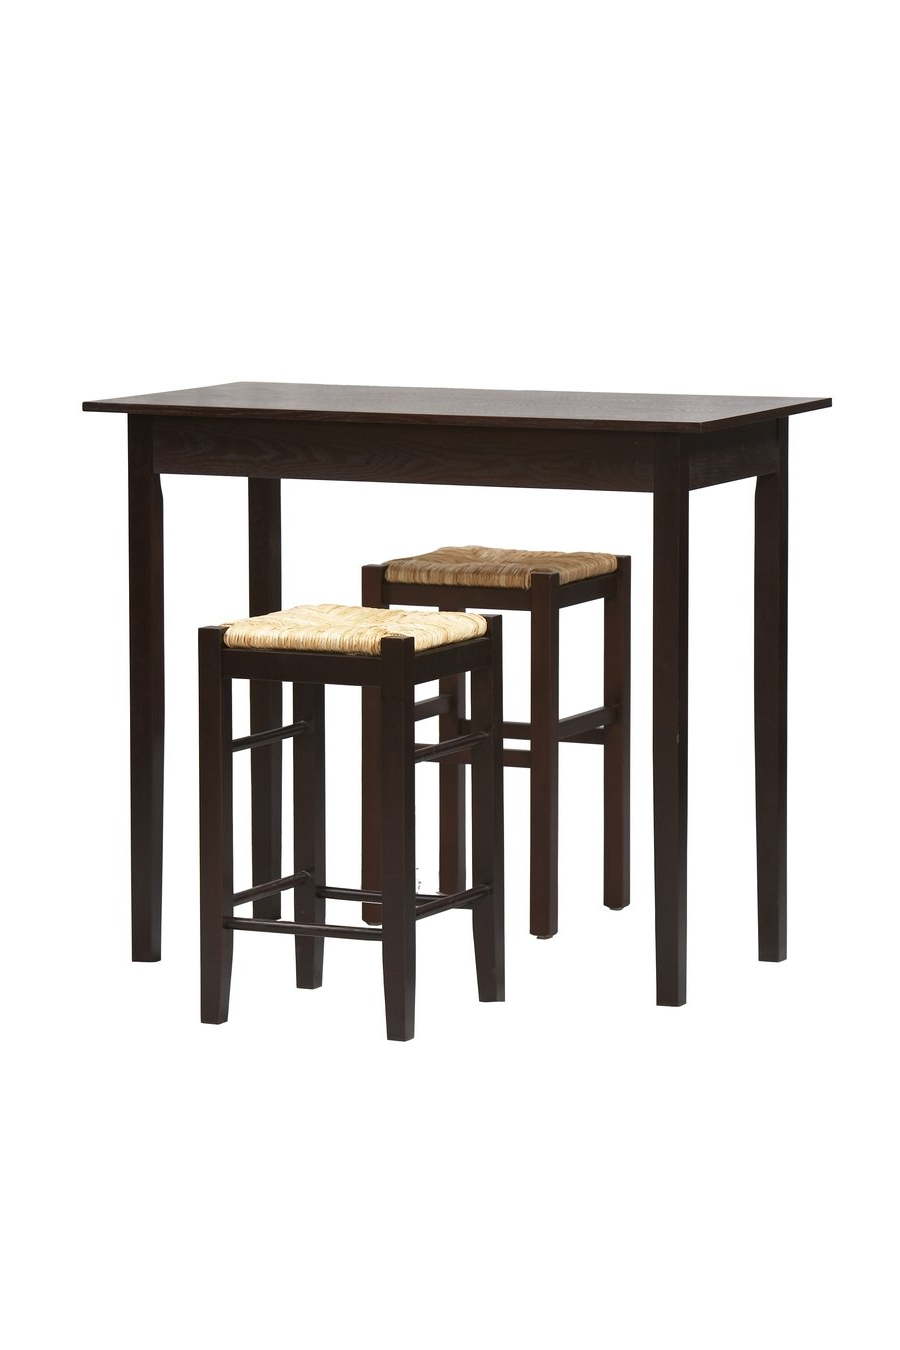 Amazon – 3 Pc Counter Dining Set In Espresso Finish – Table Intended For Most Recently Released Tappahannock 3 Piece Counter Height Dining Sets (View 6 of 25)